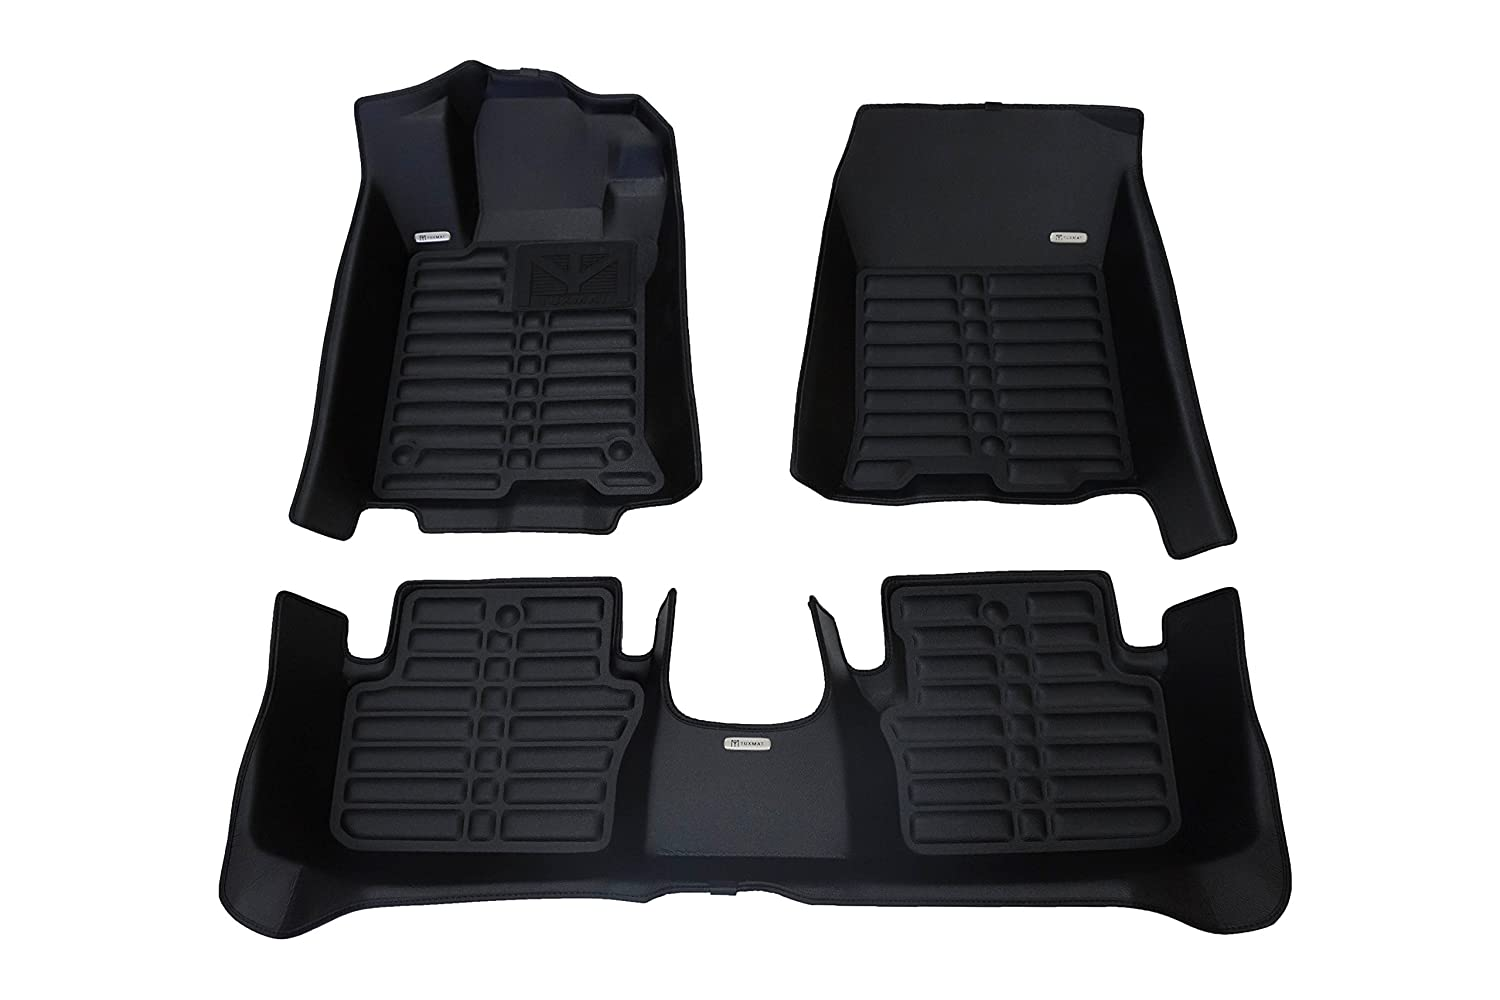 TuxMat Custom Car Floor Mats for Acura TLX FWD 2015-2019 Models - Laser Measured, Largest Coverage, Waterproof, All Weather. The Ultimate Winter Mats, Also Look Great in the Summer. The Best Acura TLX Accessory. (Full Set - Black)